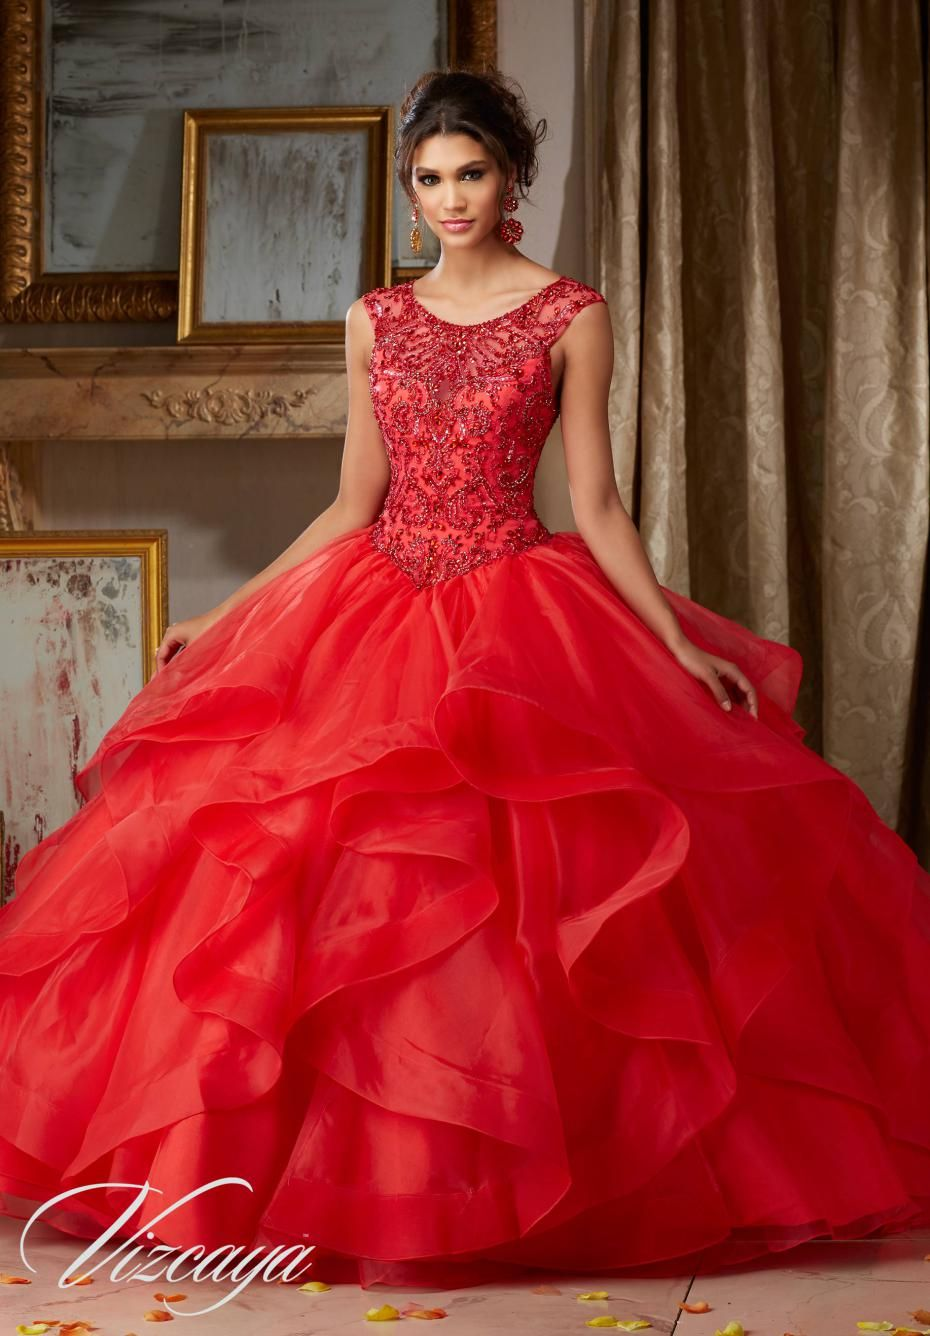 Cheap debutante vestido buy quality debutante ball dresses directly